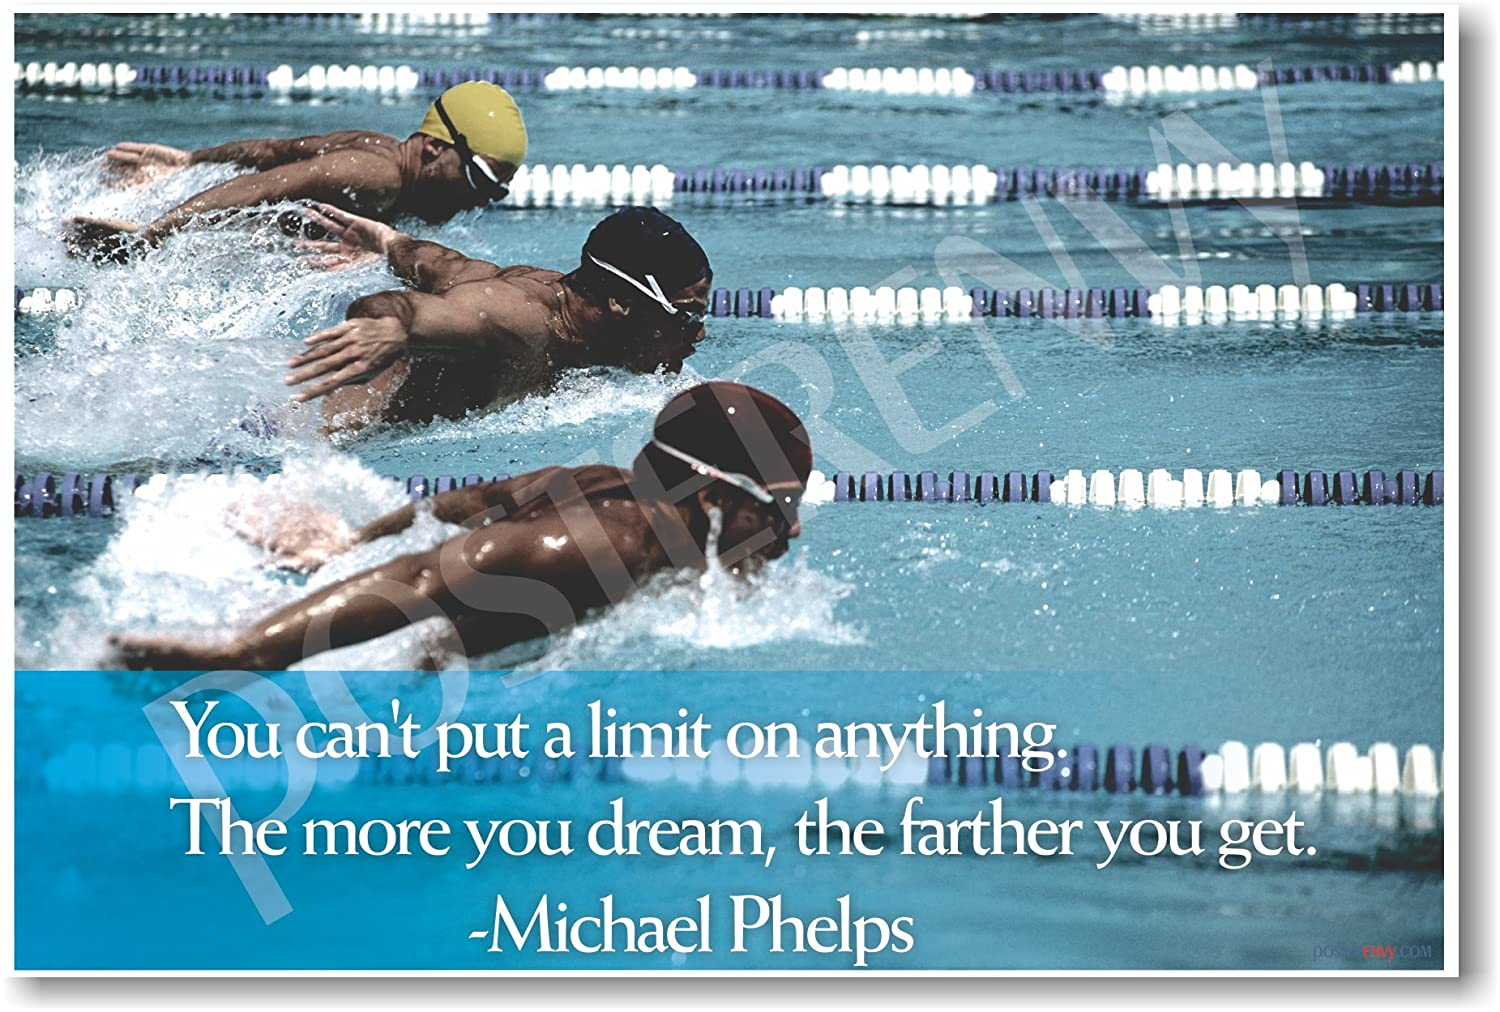 Amazon.com: The More You Dream   Michael Phelps Quote   Motivational  Classroom Poster: Office Products